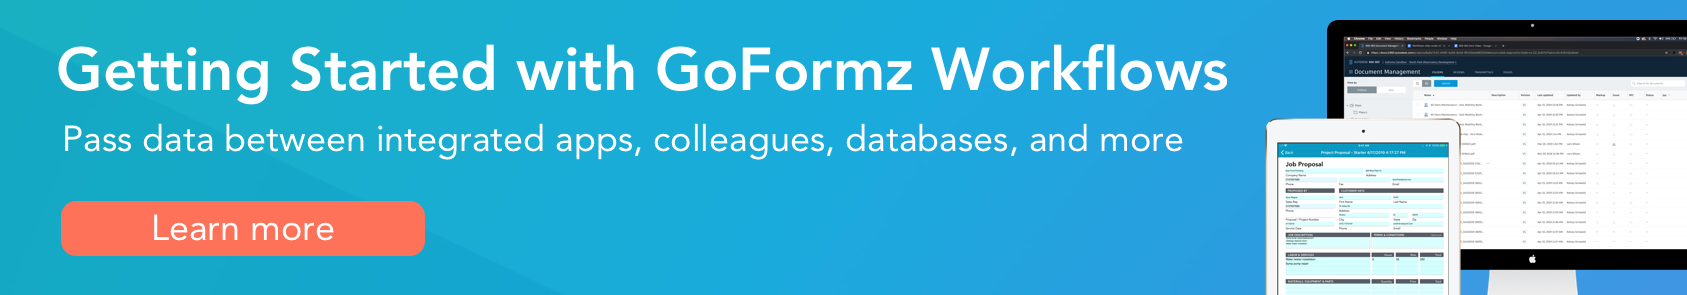 Banner text: Getting started with GoFormz workflows, click here to learn more